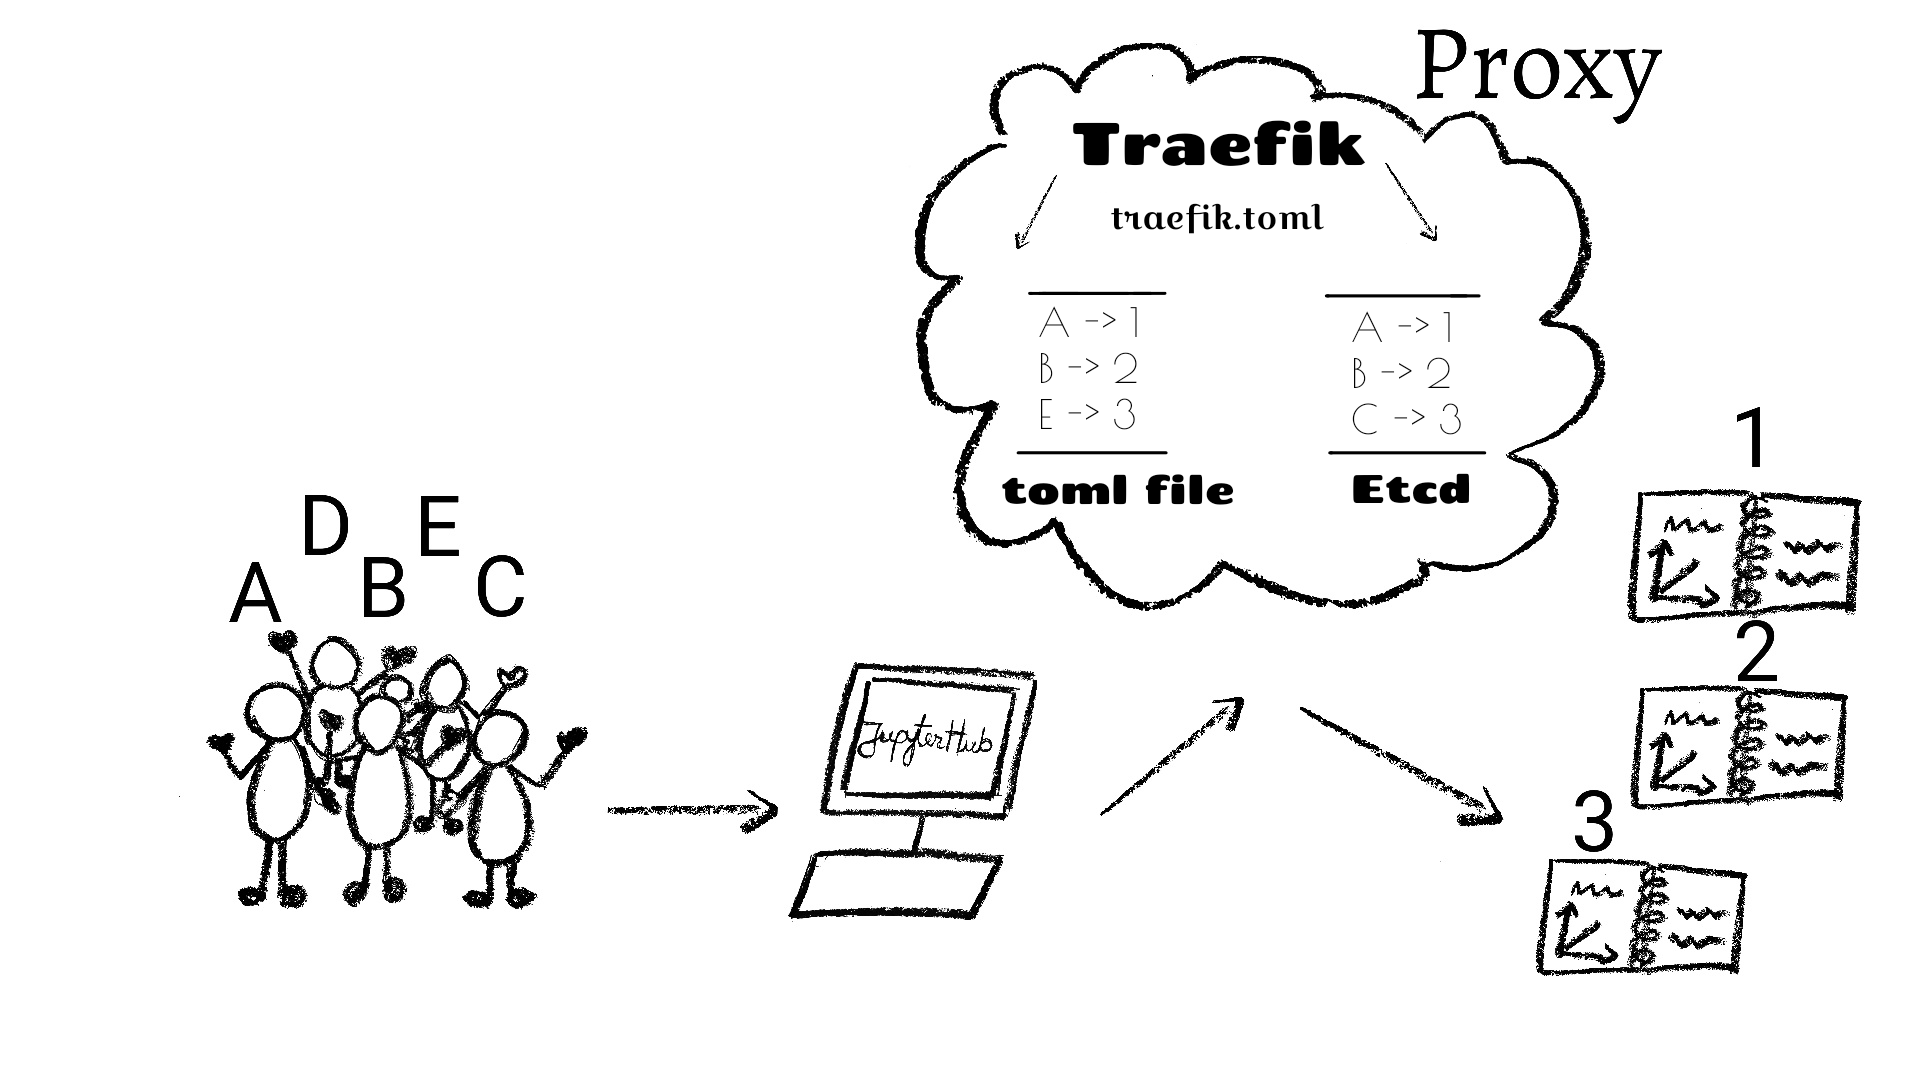 Introducing TraefikProxy — a scalable and highly available